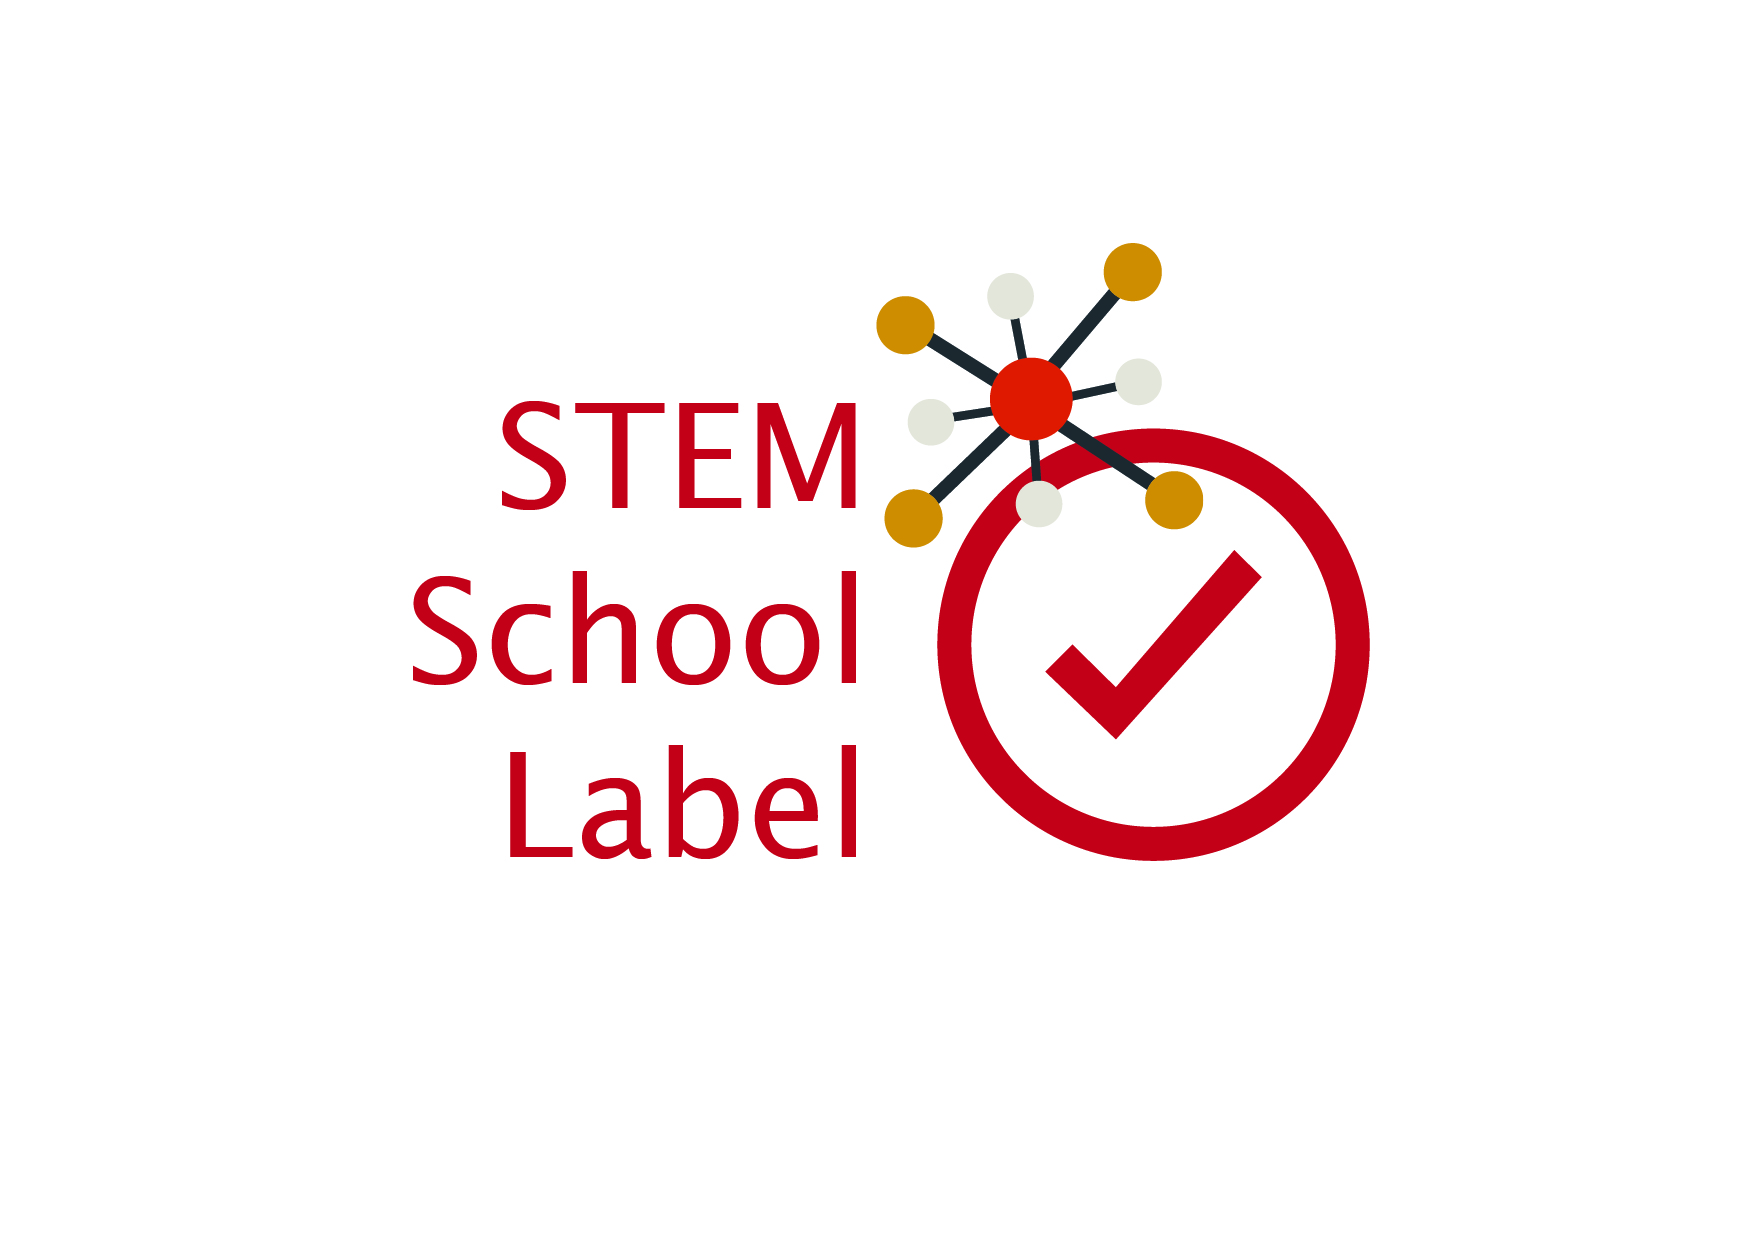 STEM School Label